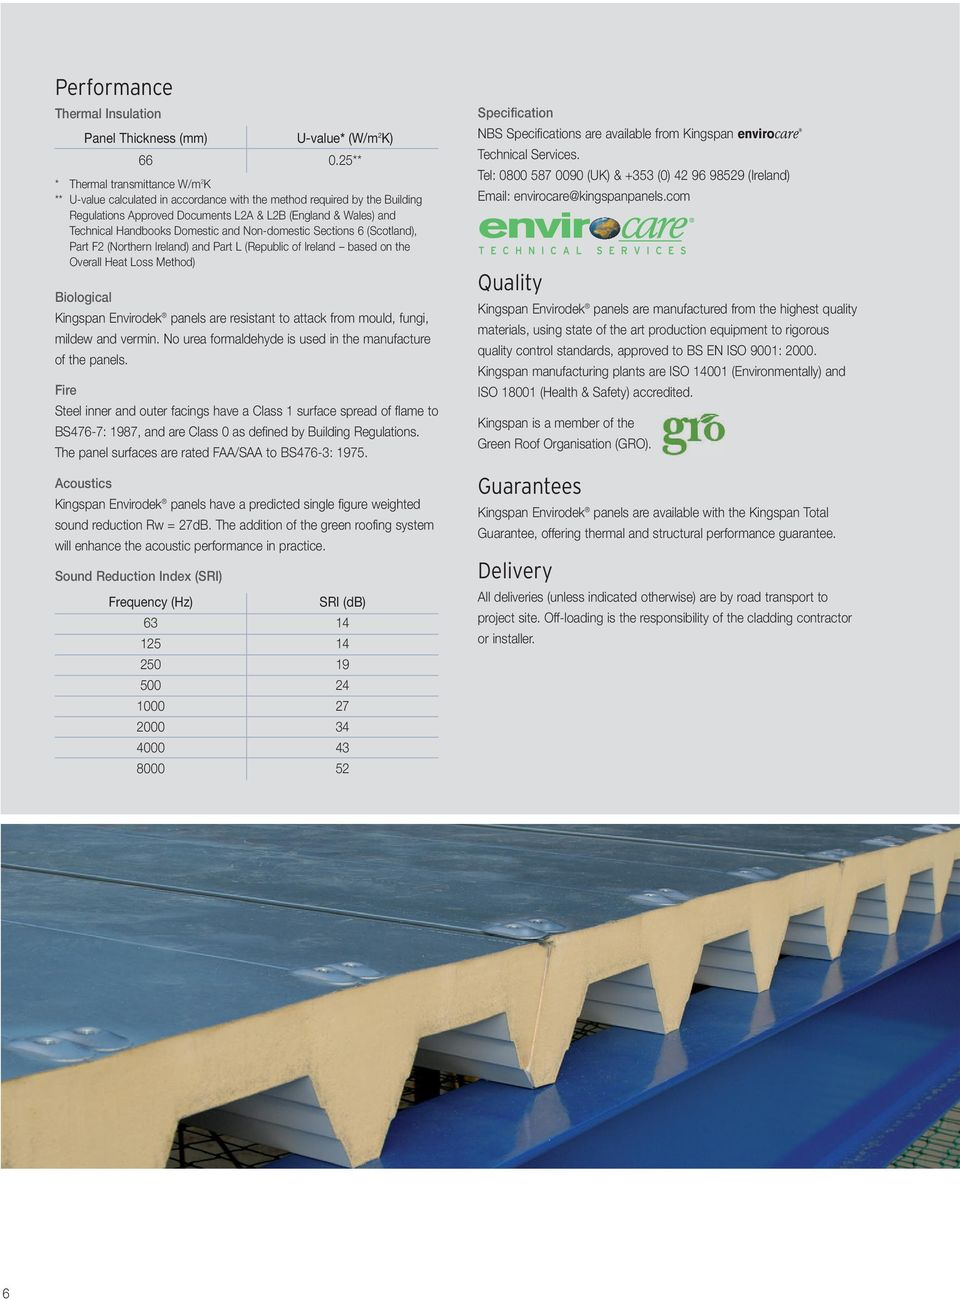 Domestic and Non-domestic Sections 6 (Scotland), Part F2 (Northern Ireland) and Part L (Republic of Ireland based on the Overall Heat Loss Method) Biological Envirodek panels are resistant to attack